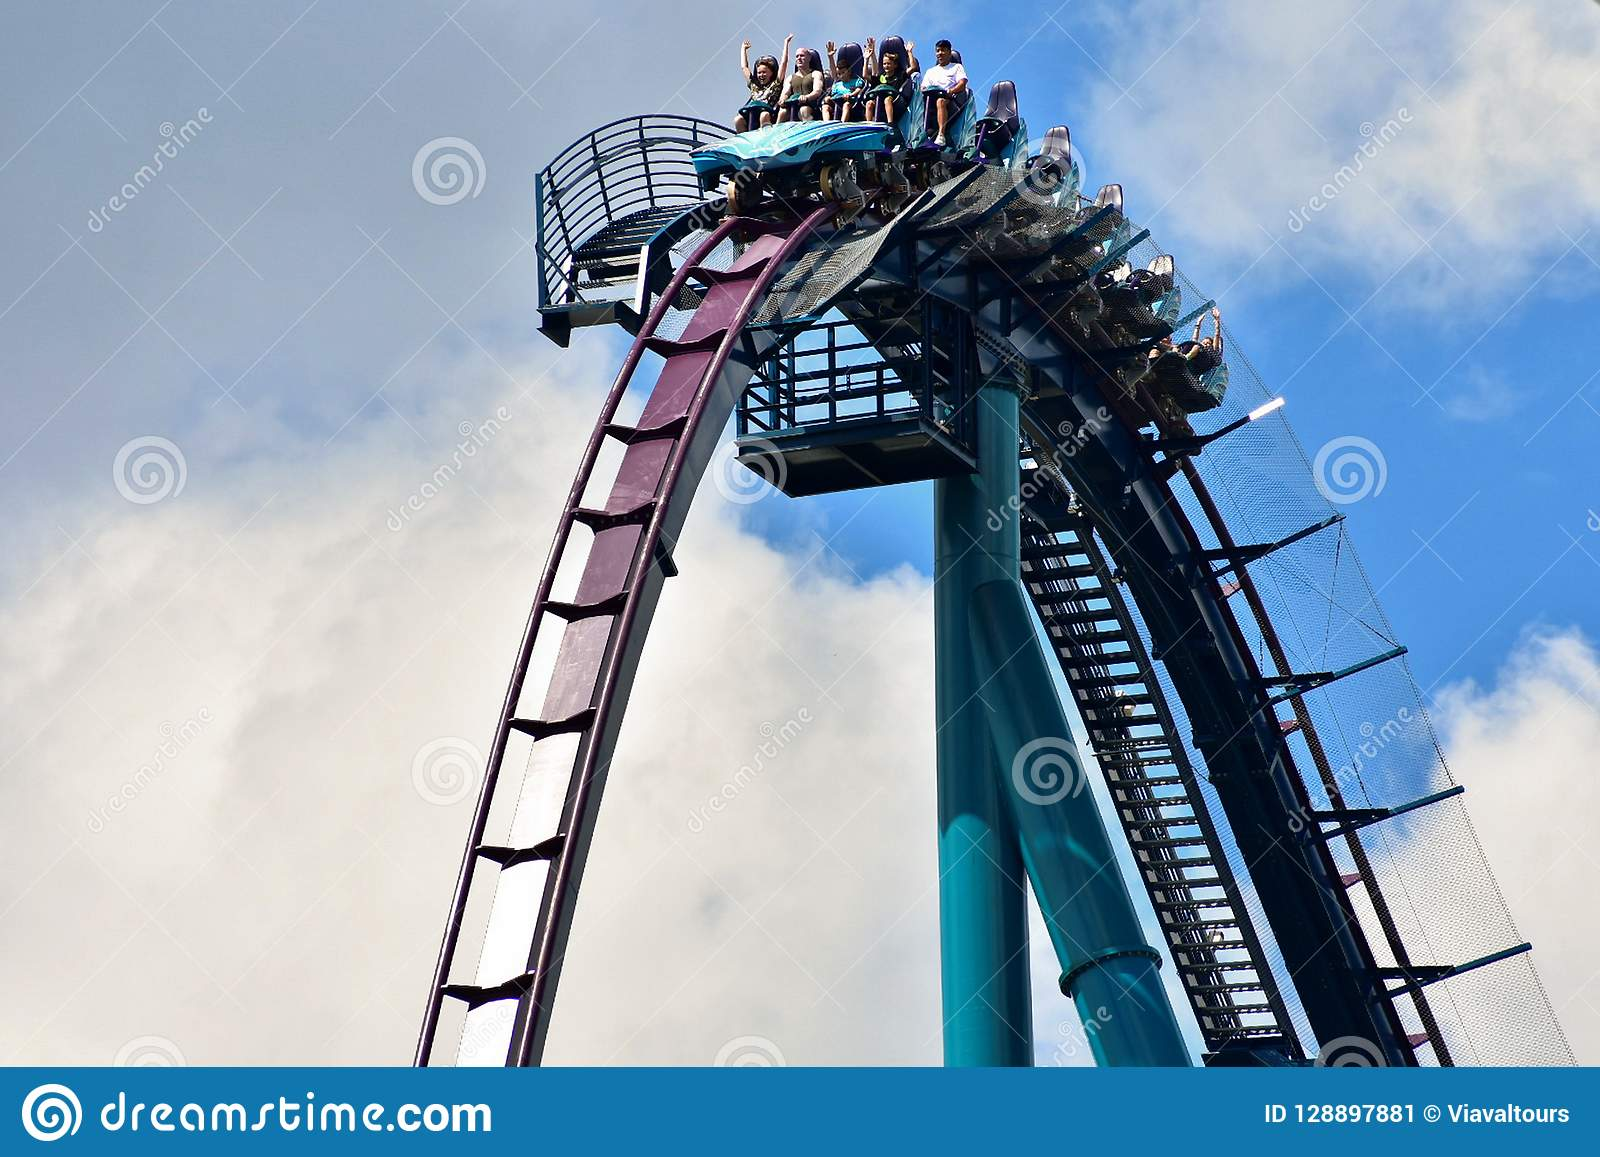 A Group of people enjoy a fast roller coaster ride located at International Drive Area.